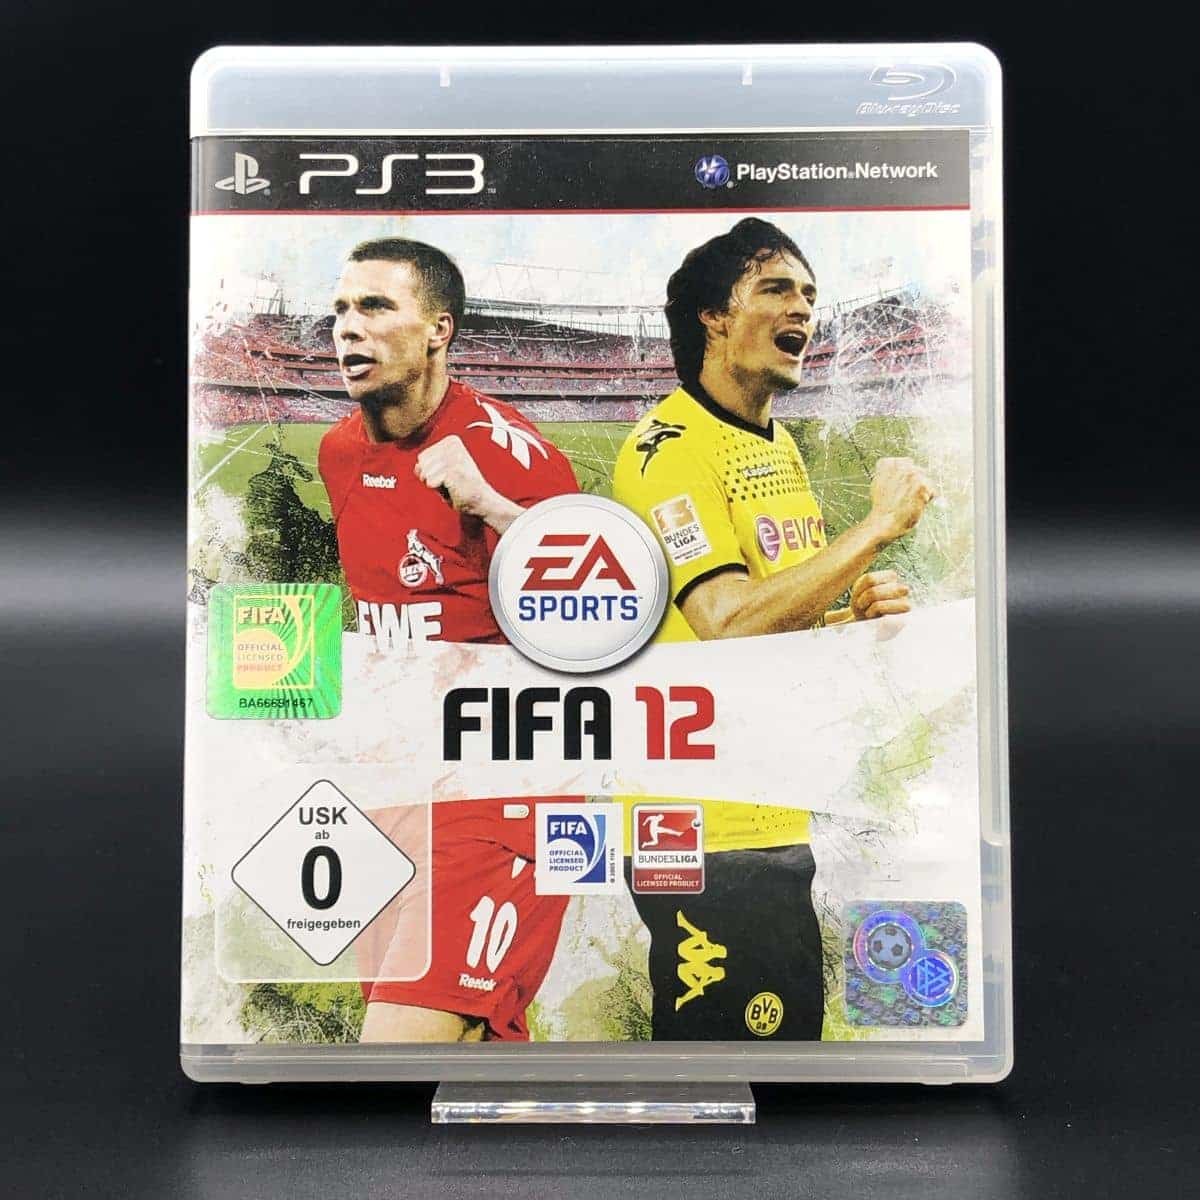 PS3 FIFA 12 (ohne Anleitung) (Sehr gut) Sony PlayStation 3